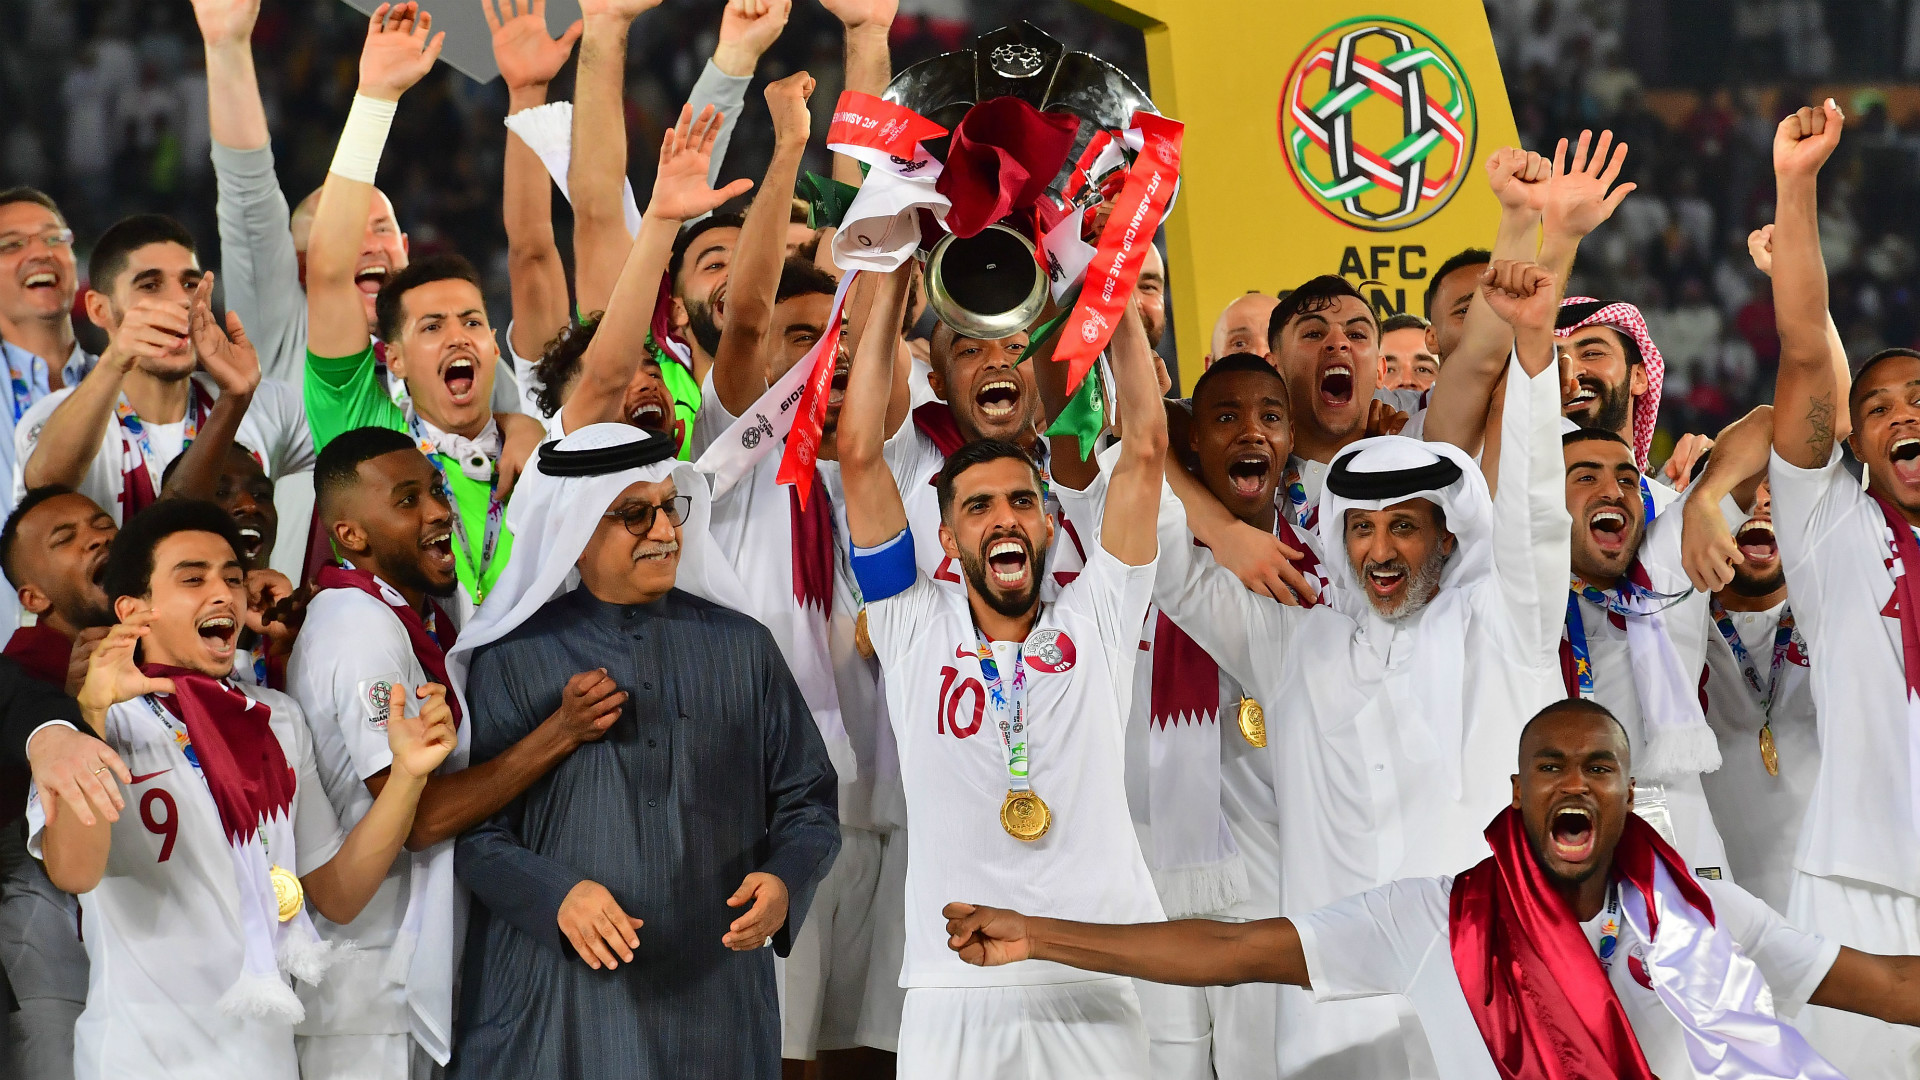 Iraq legend Younis Mahmoud to Korean and Japanese clubs - 'Enjoy the experience of playing in the 2022 World Cup stadiums'